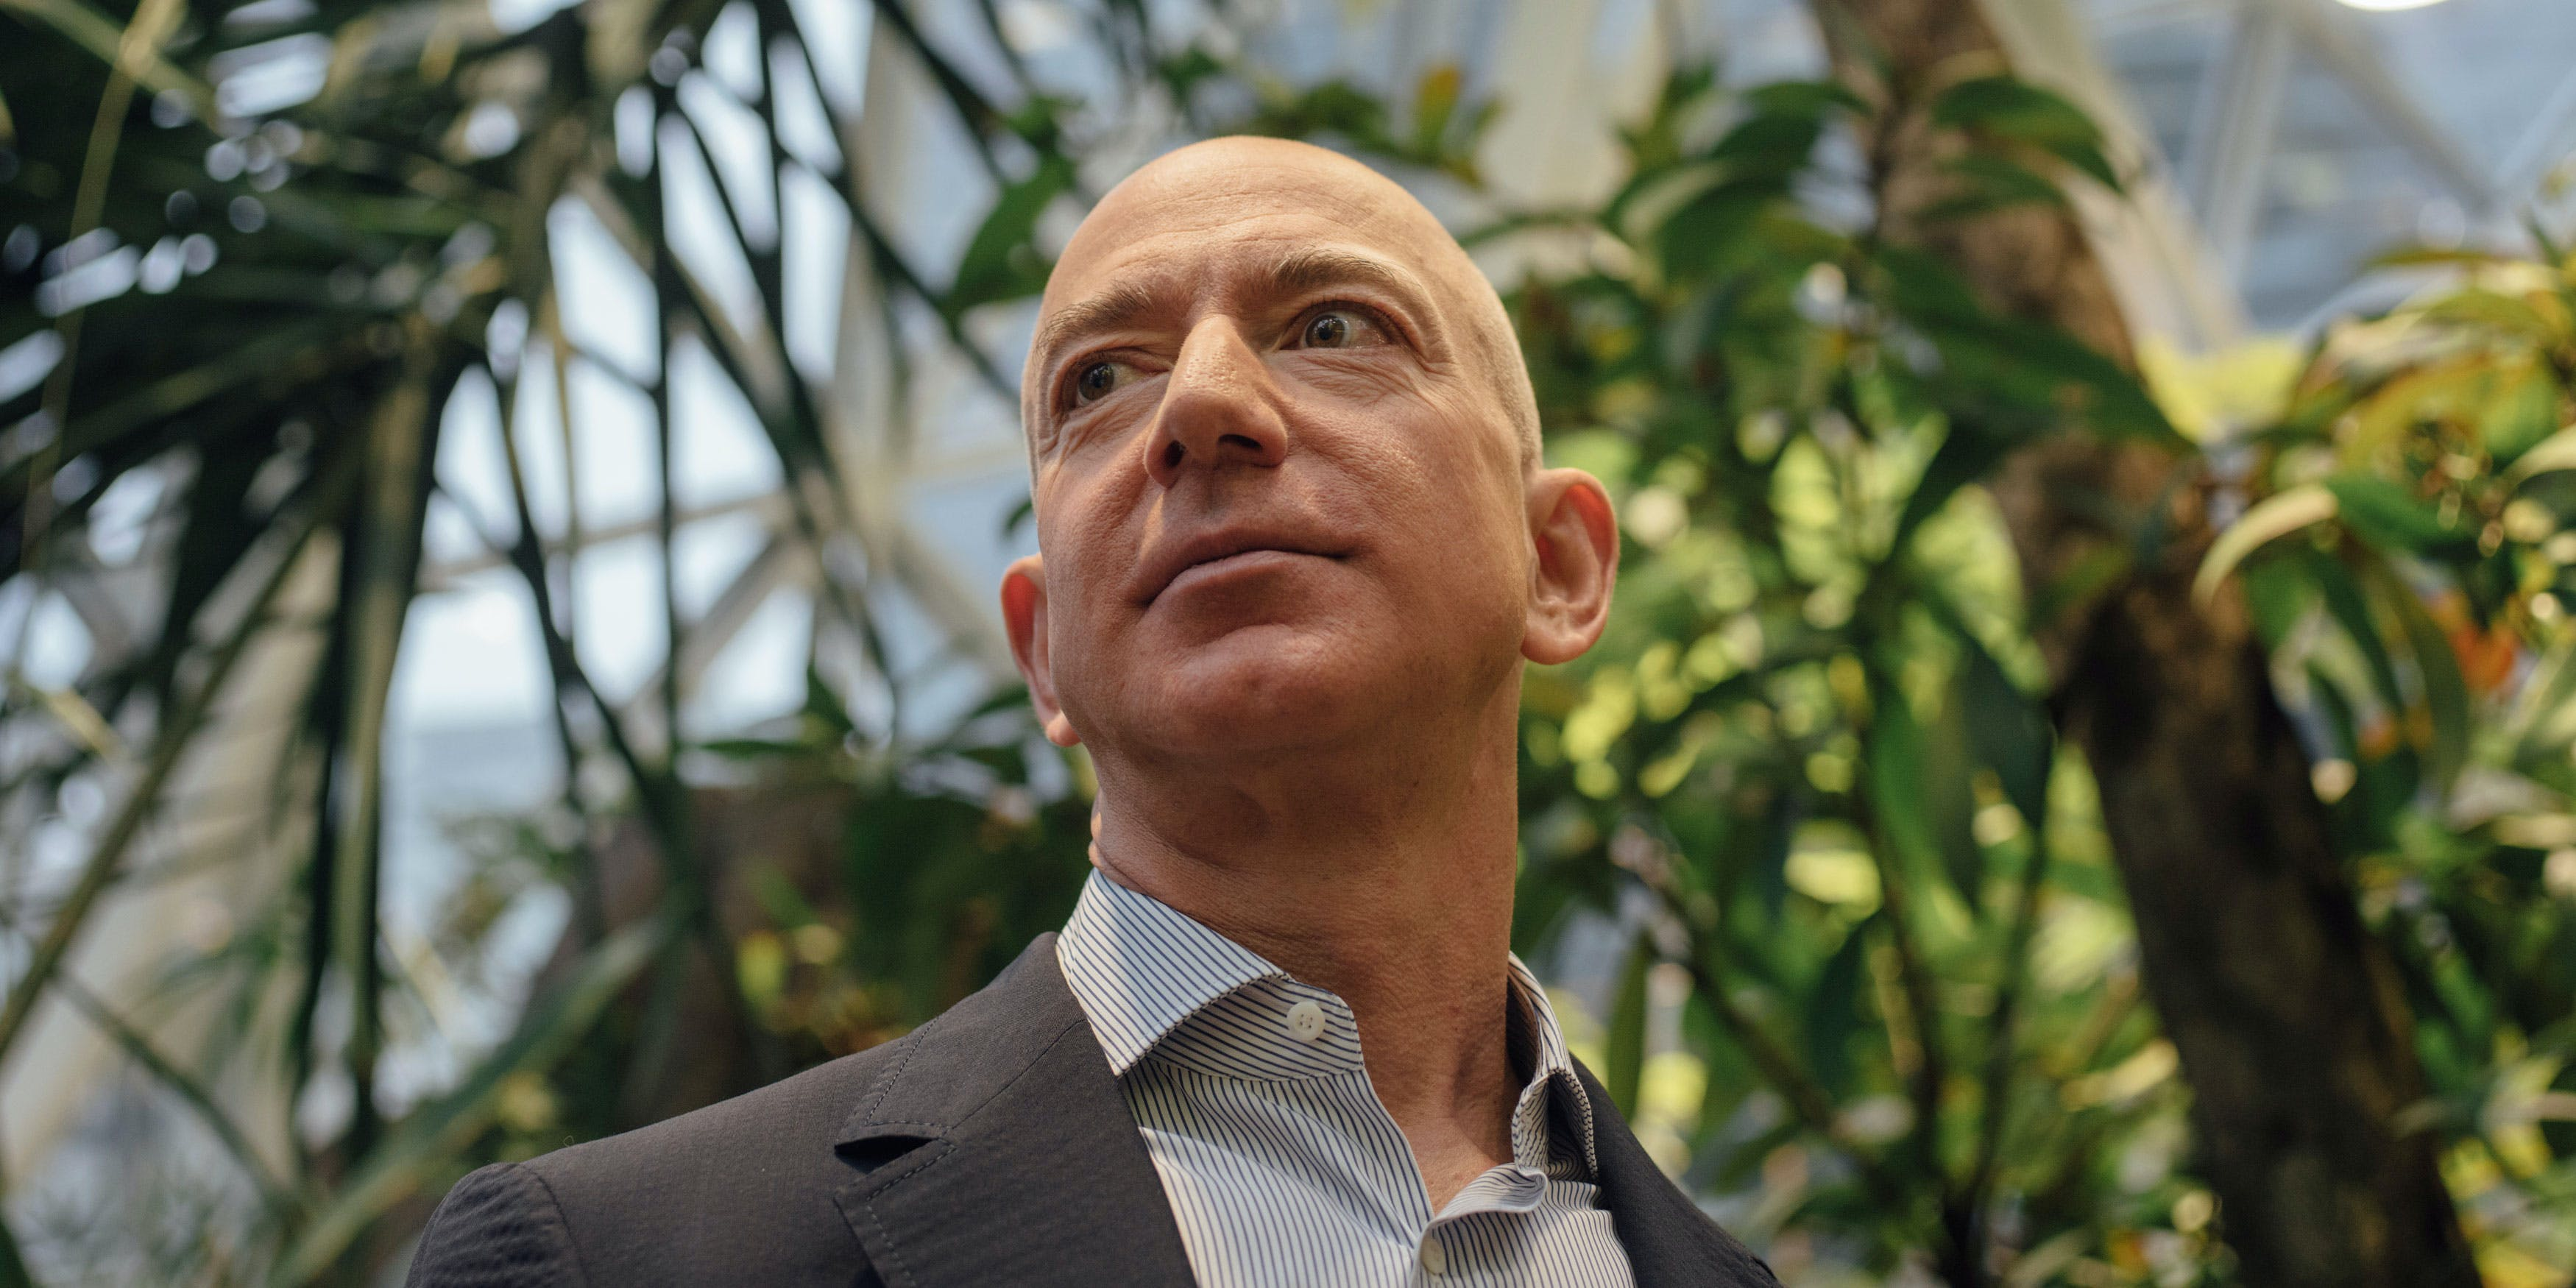 Amazon is donating money to NORML to legalize weed. Here, CEO and Founder Jeff Bezos is taken on a tour of the plants around The Spheres during the grand opening at the Amazon Spheres in Seattle, Washington on January 29, 2018.